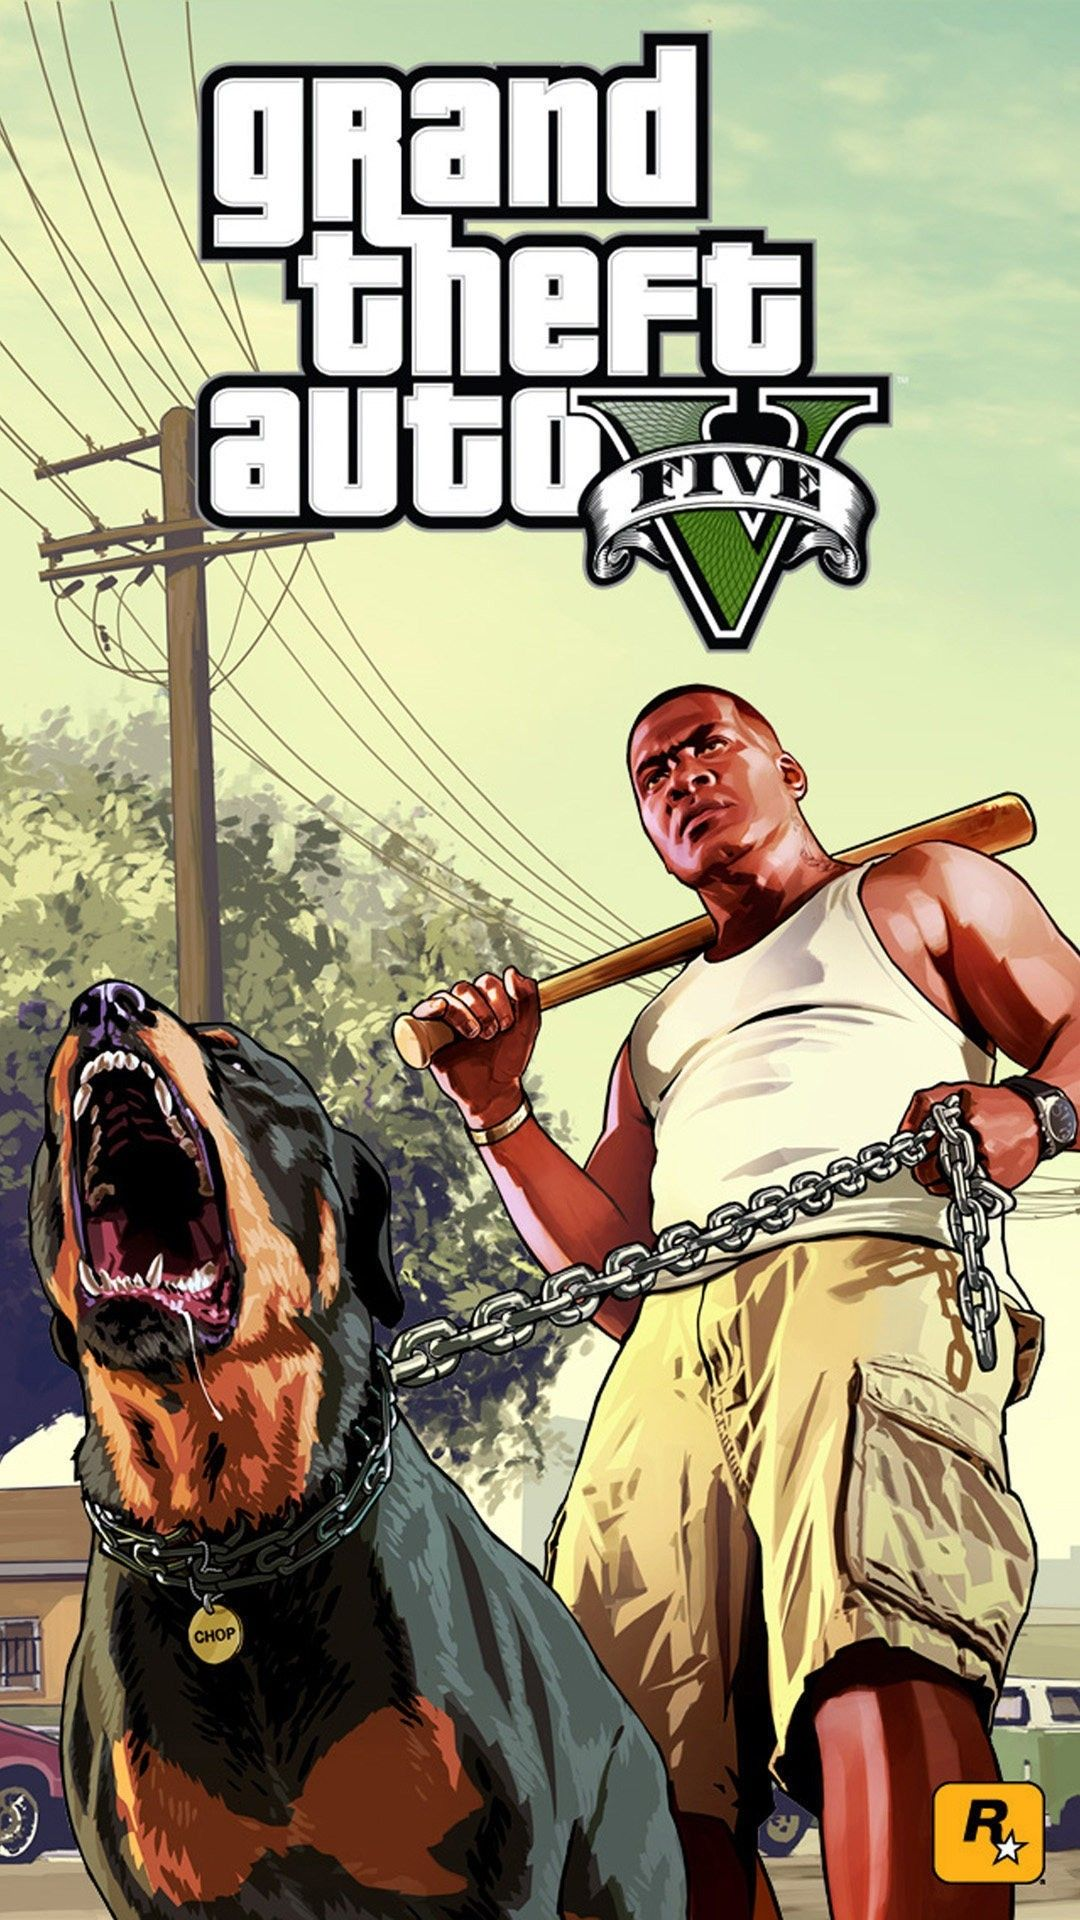 Grand Theft Auto 5 gta5 gtav For Morewww